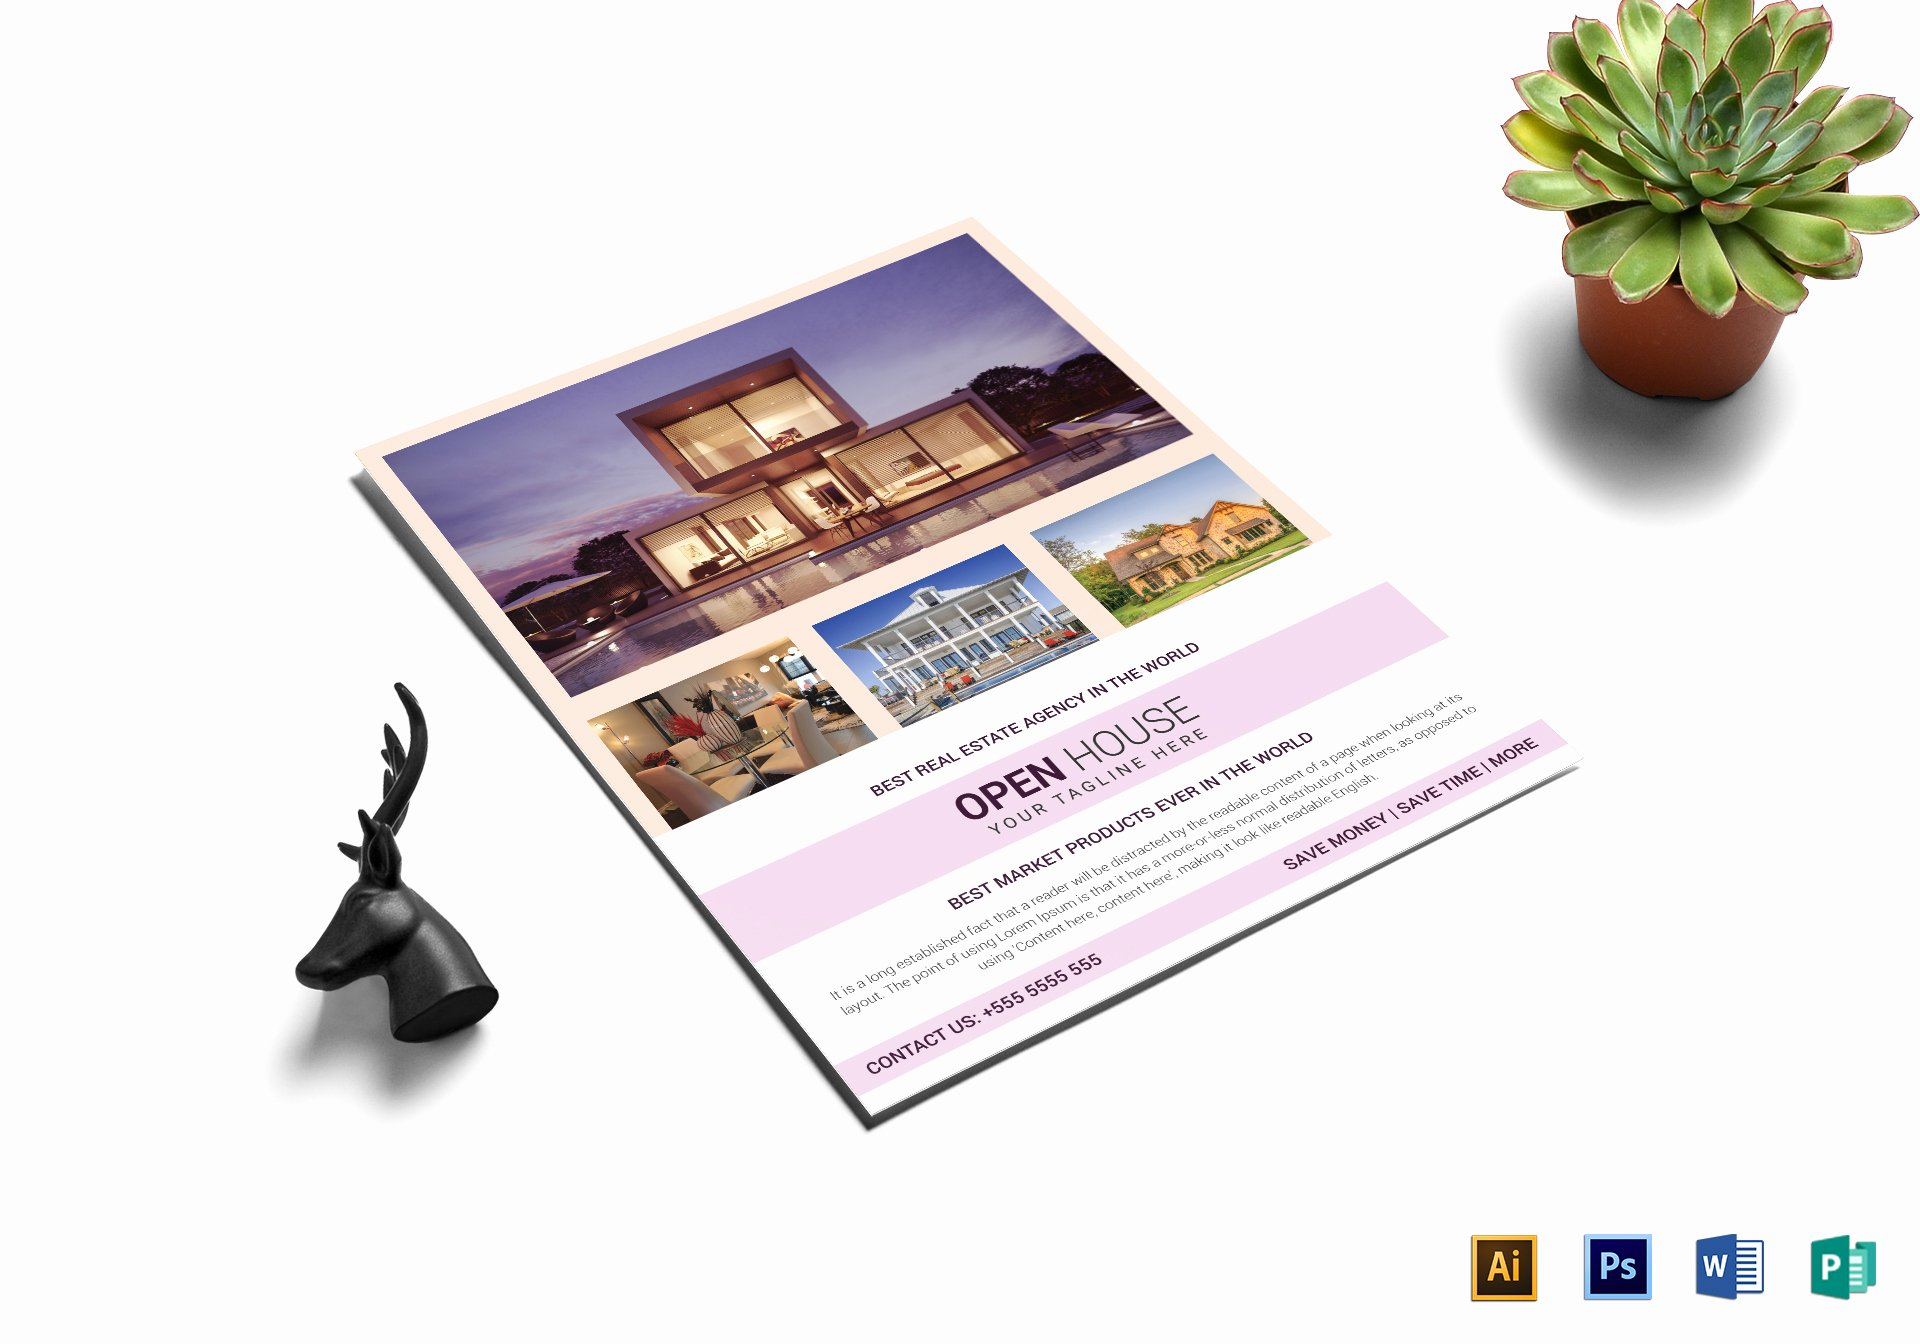 Open House Flyer Template Word Awesome Real Estate Agency Open House Flyer Design Template In Word Psd Publisher